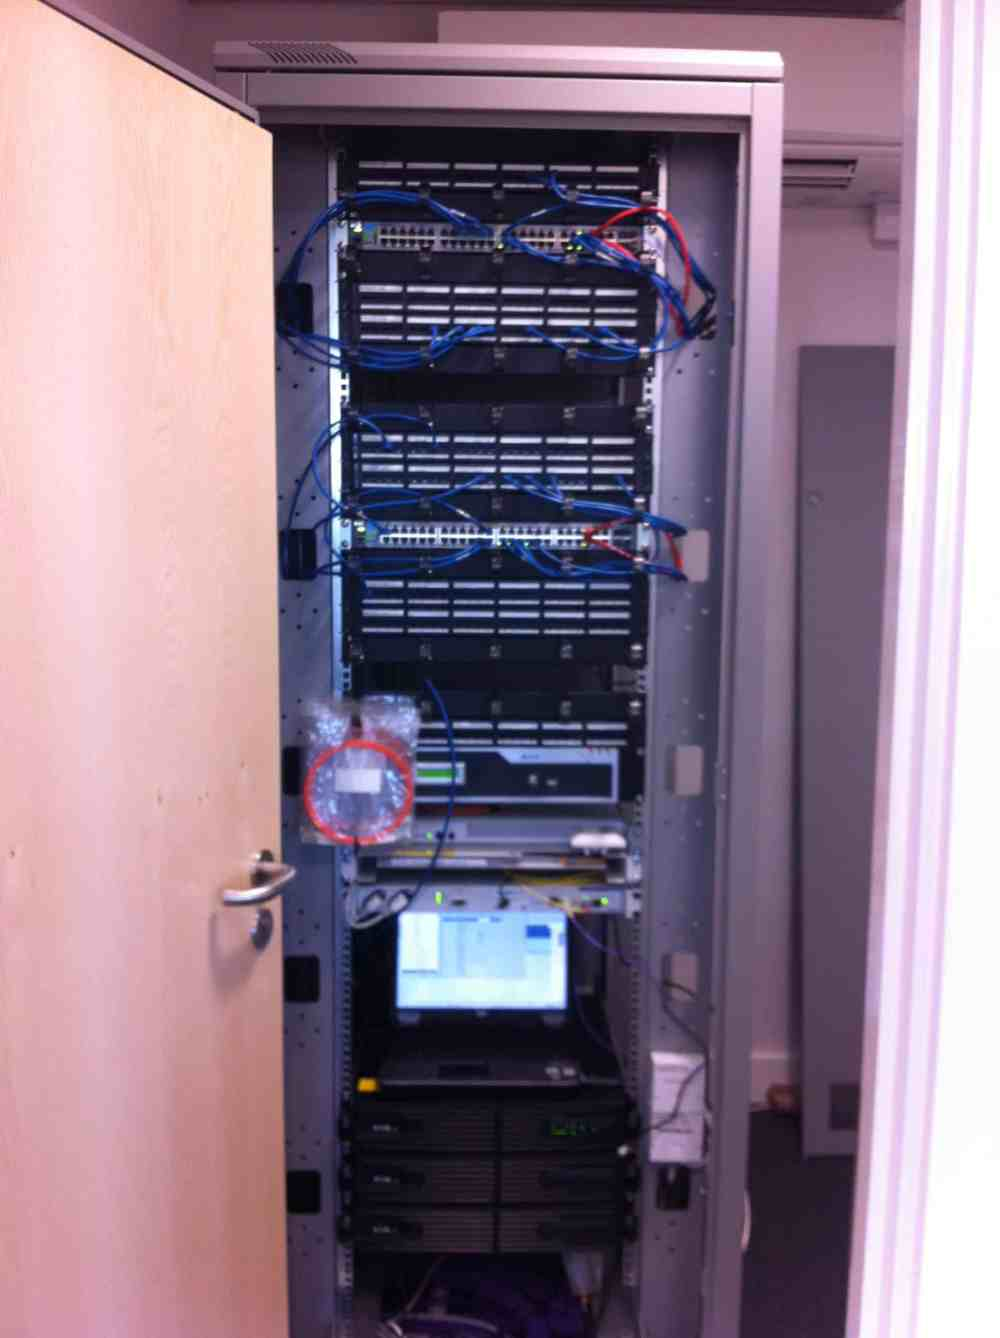 medium resolution of structured cabling comms cabinet example structured cabling comms cabinet example